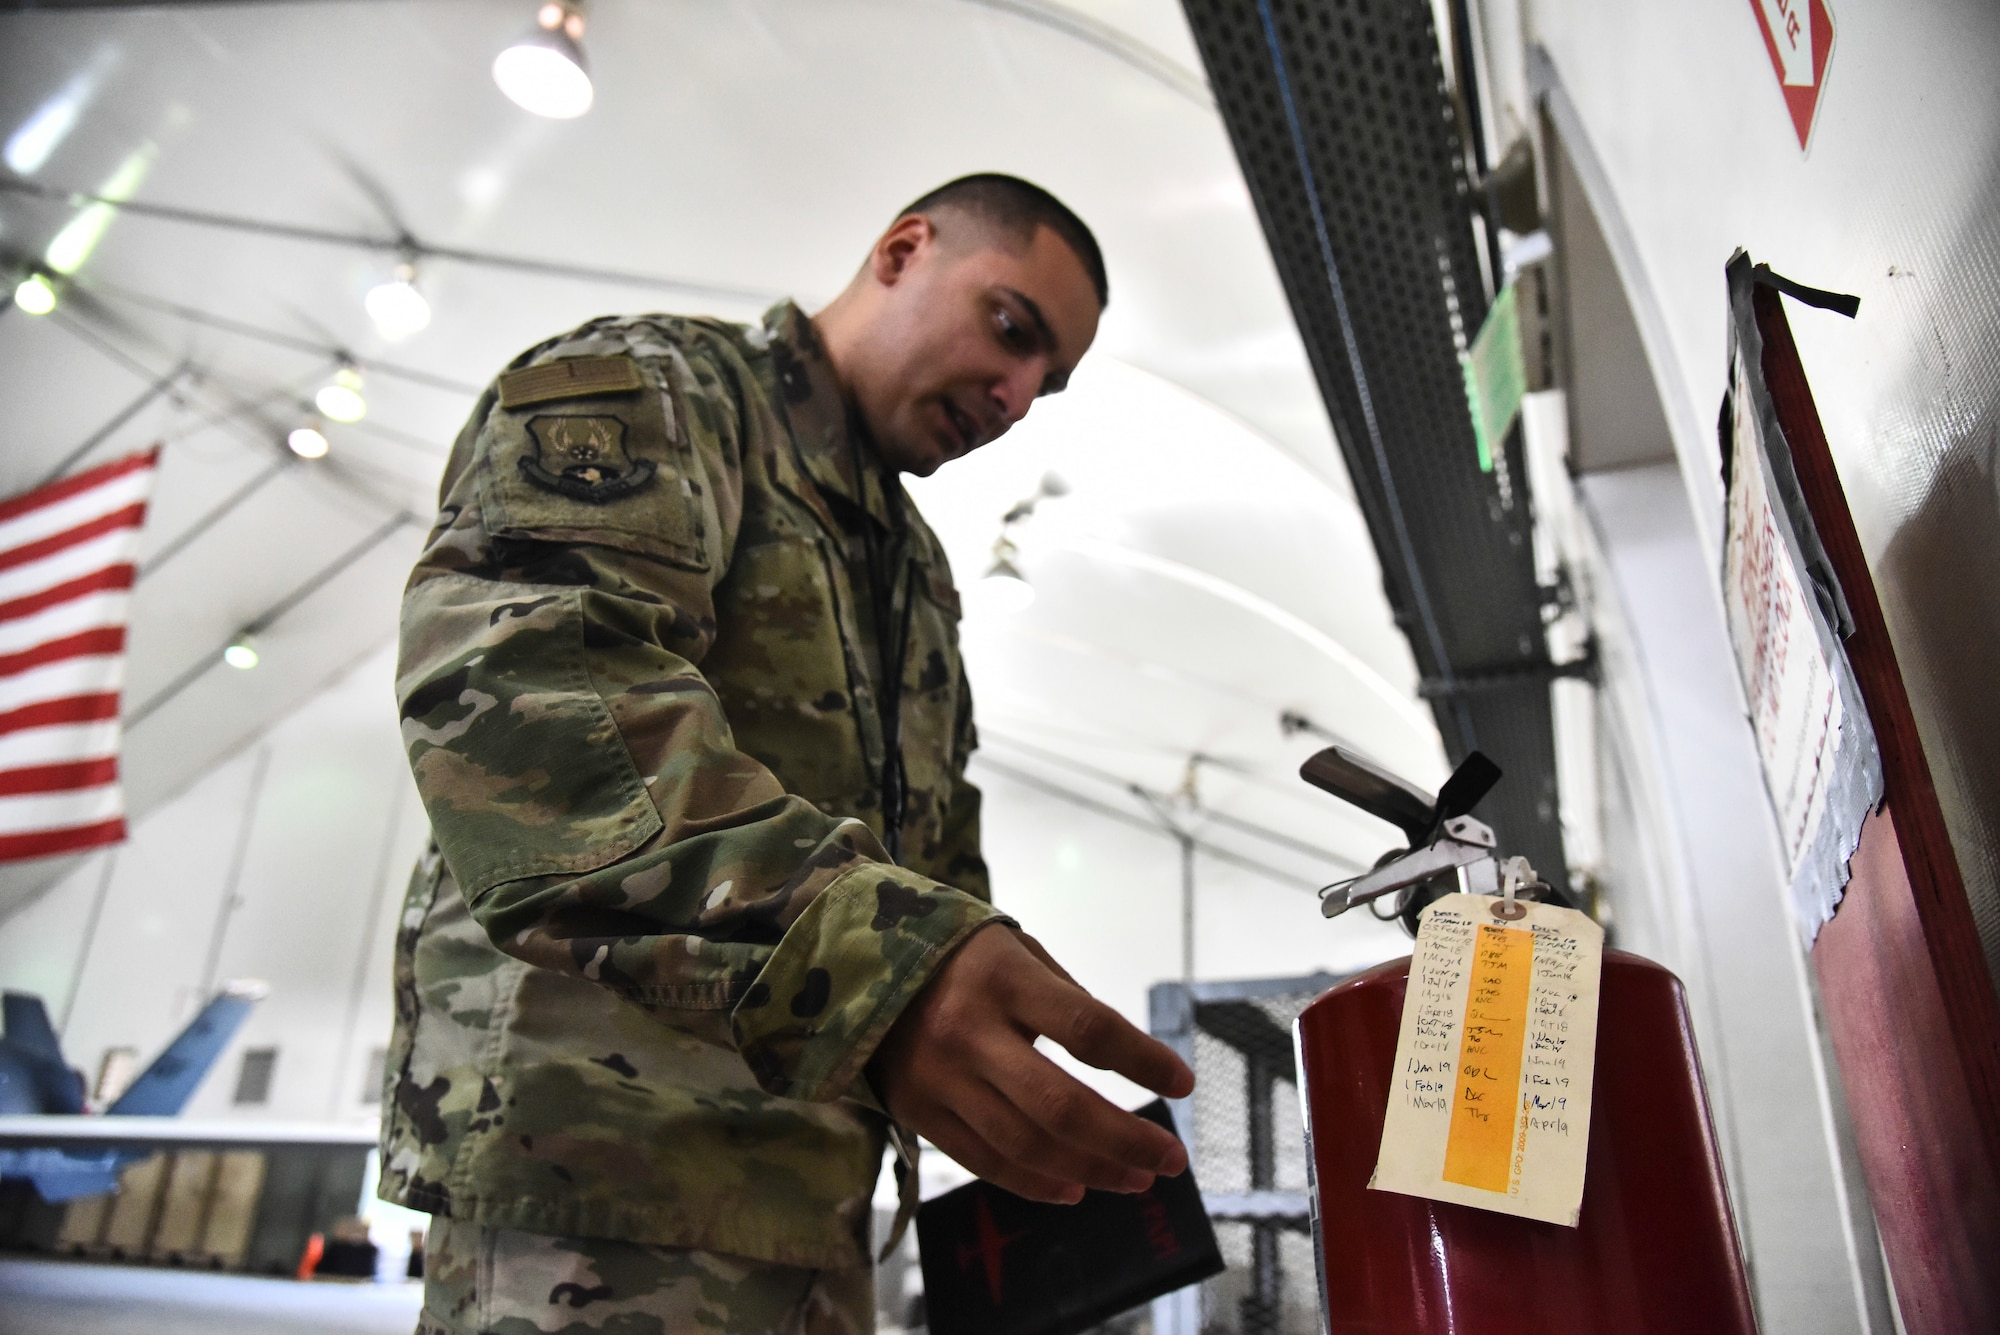 Staff Sgt. Luis Rosa, 380th Expeditionary Maintenance Group RQ-4 Global Hawk and U-2 Dragon Lady quality assurance inspector, inspects a fire hydrant in an aircraft hangar at Al Dhafra Air Base, United Arab Emirates, March 12, 2019. QA Airmen serve as the primary technical advisory agency in the maintenance organization, assisting maintenance supervision at all levels to identify, validate and/or resolve workmanship, proficiency and/or compliance issues impacting mission generation. (U.S. Air Force photo by Senior Airman Mya M. Crosby)